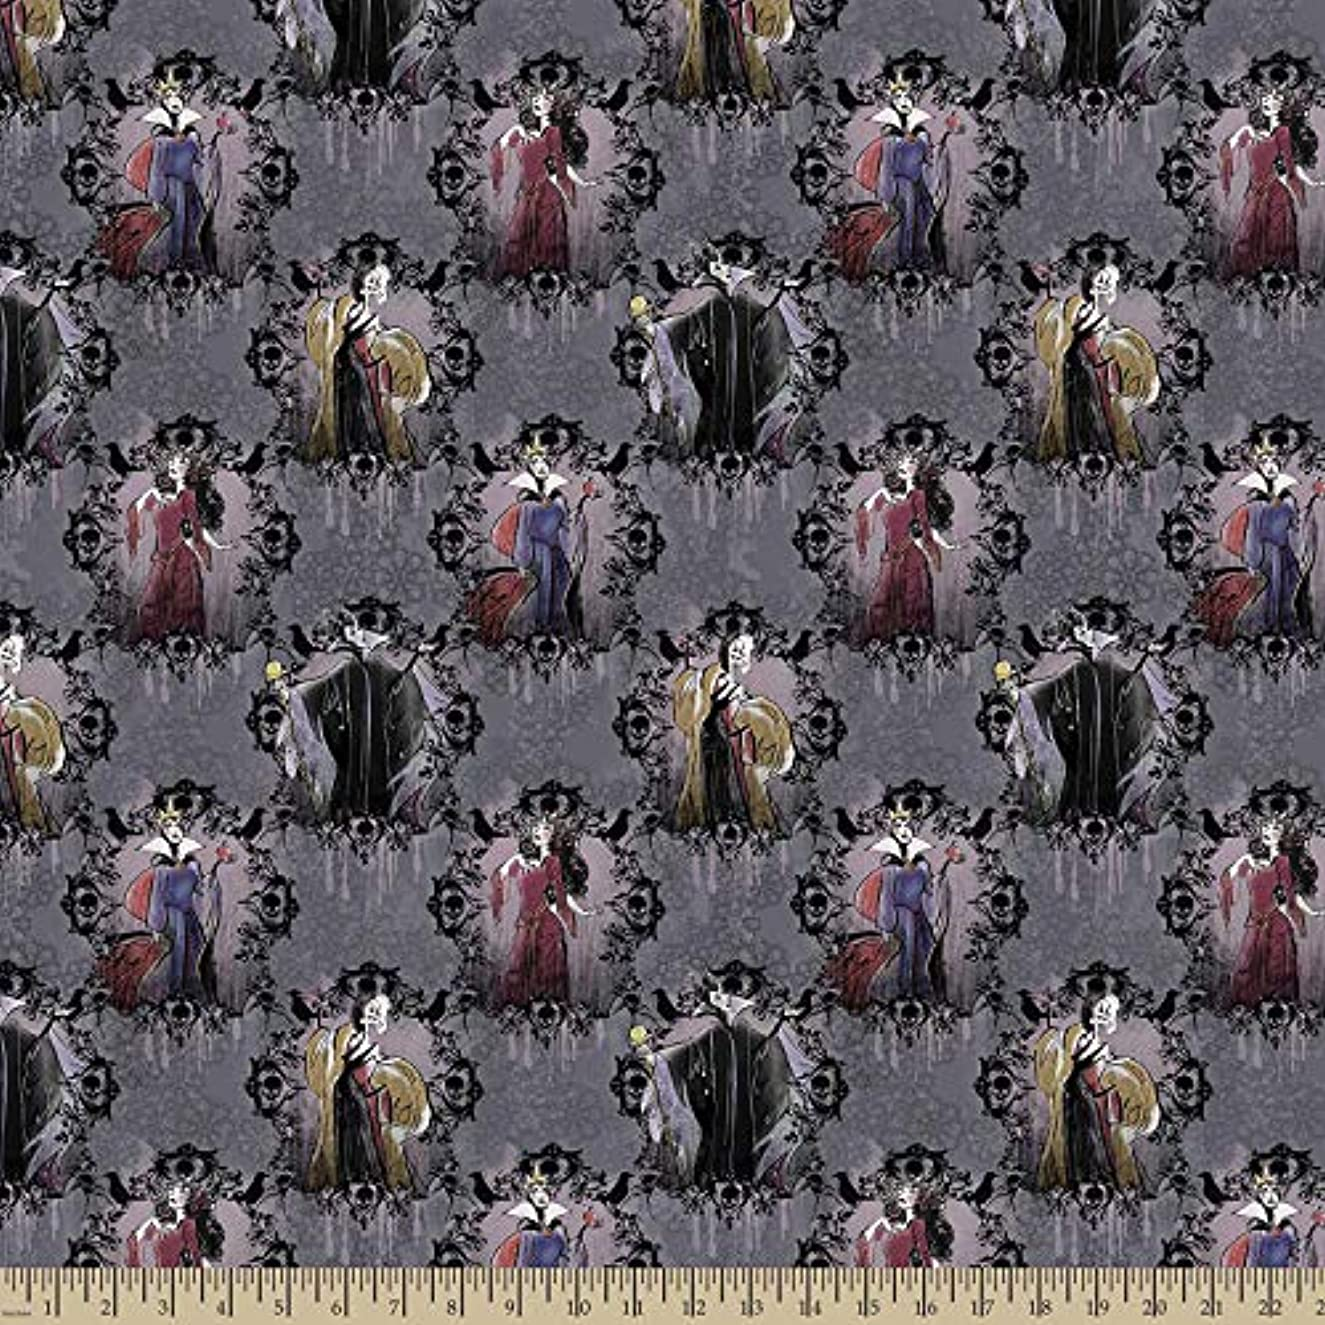 Disney Villains Portraits Fabric Licensed by Disney and Manufactured by Springs Creative (1 Yard)